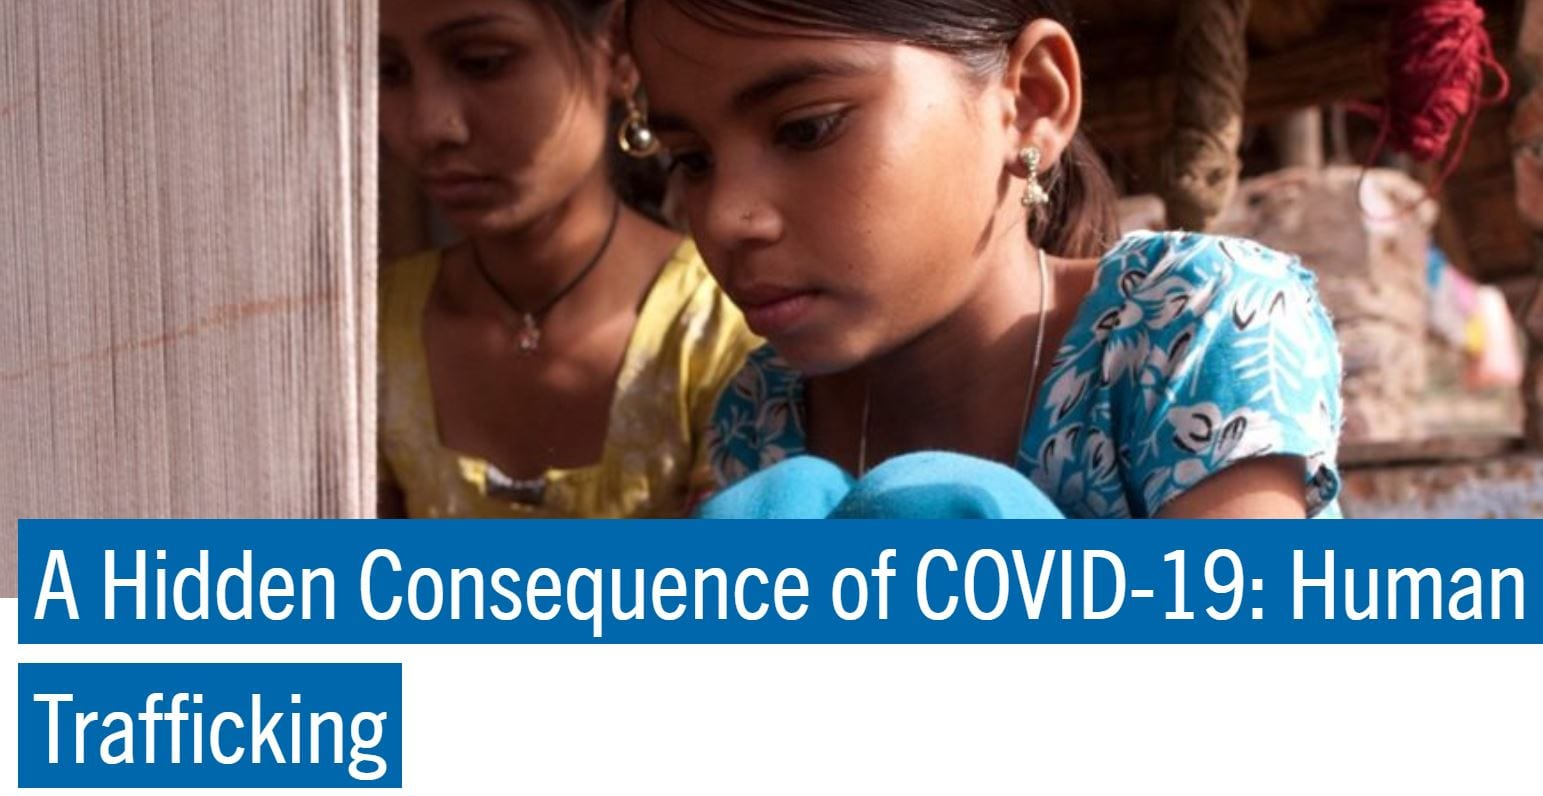 A Hidden Consequence of COVID-19: Human Trafficking